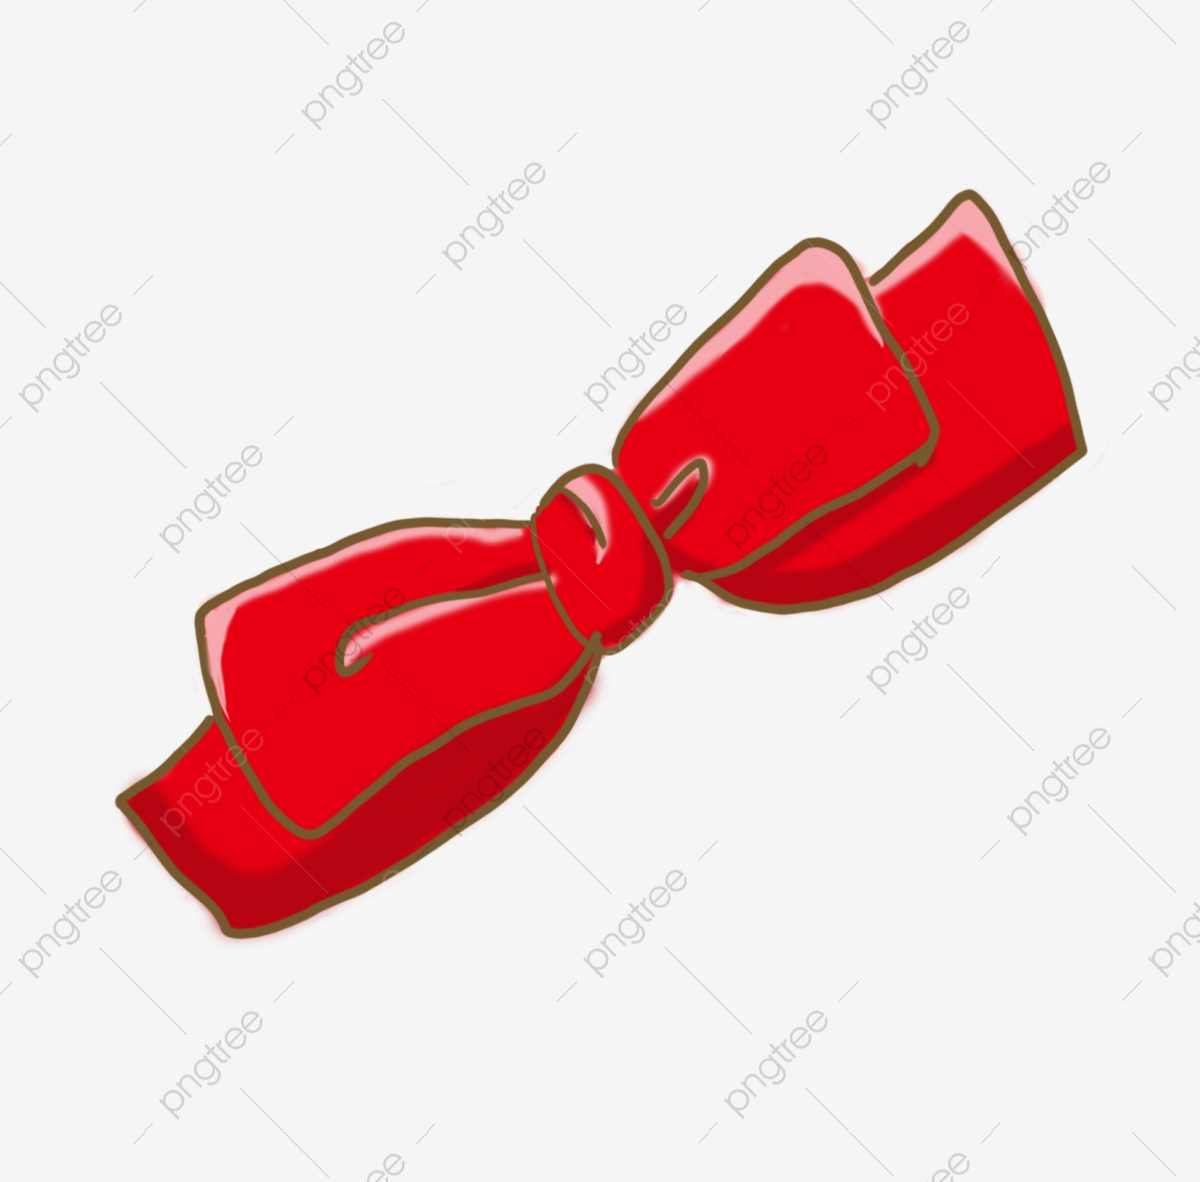 White tie png . Bowtie clipart simple bow